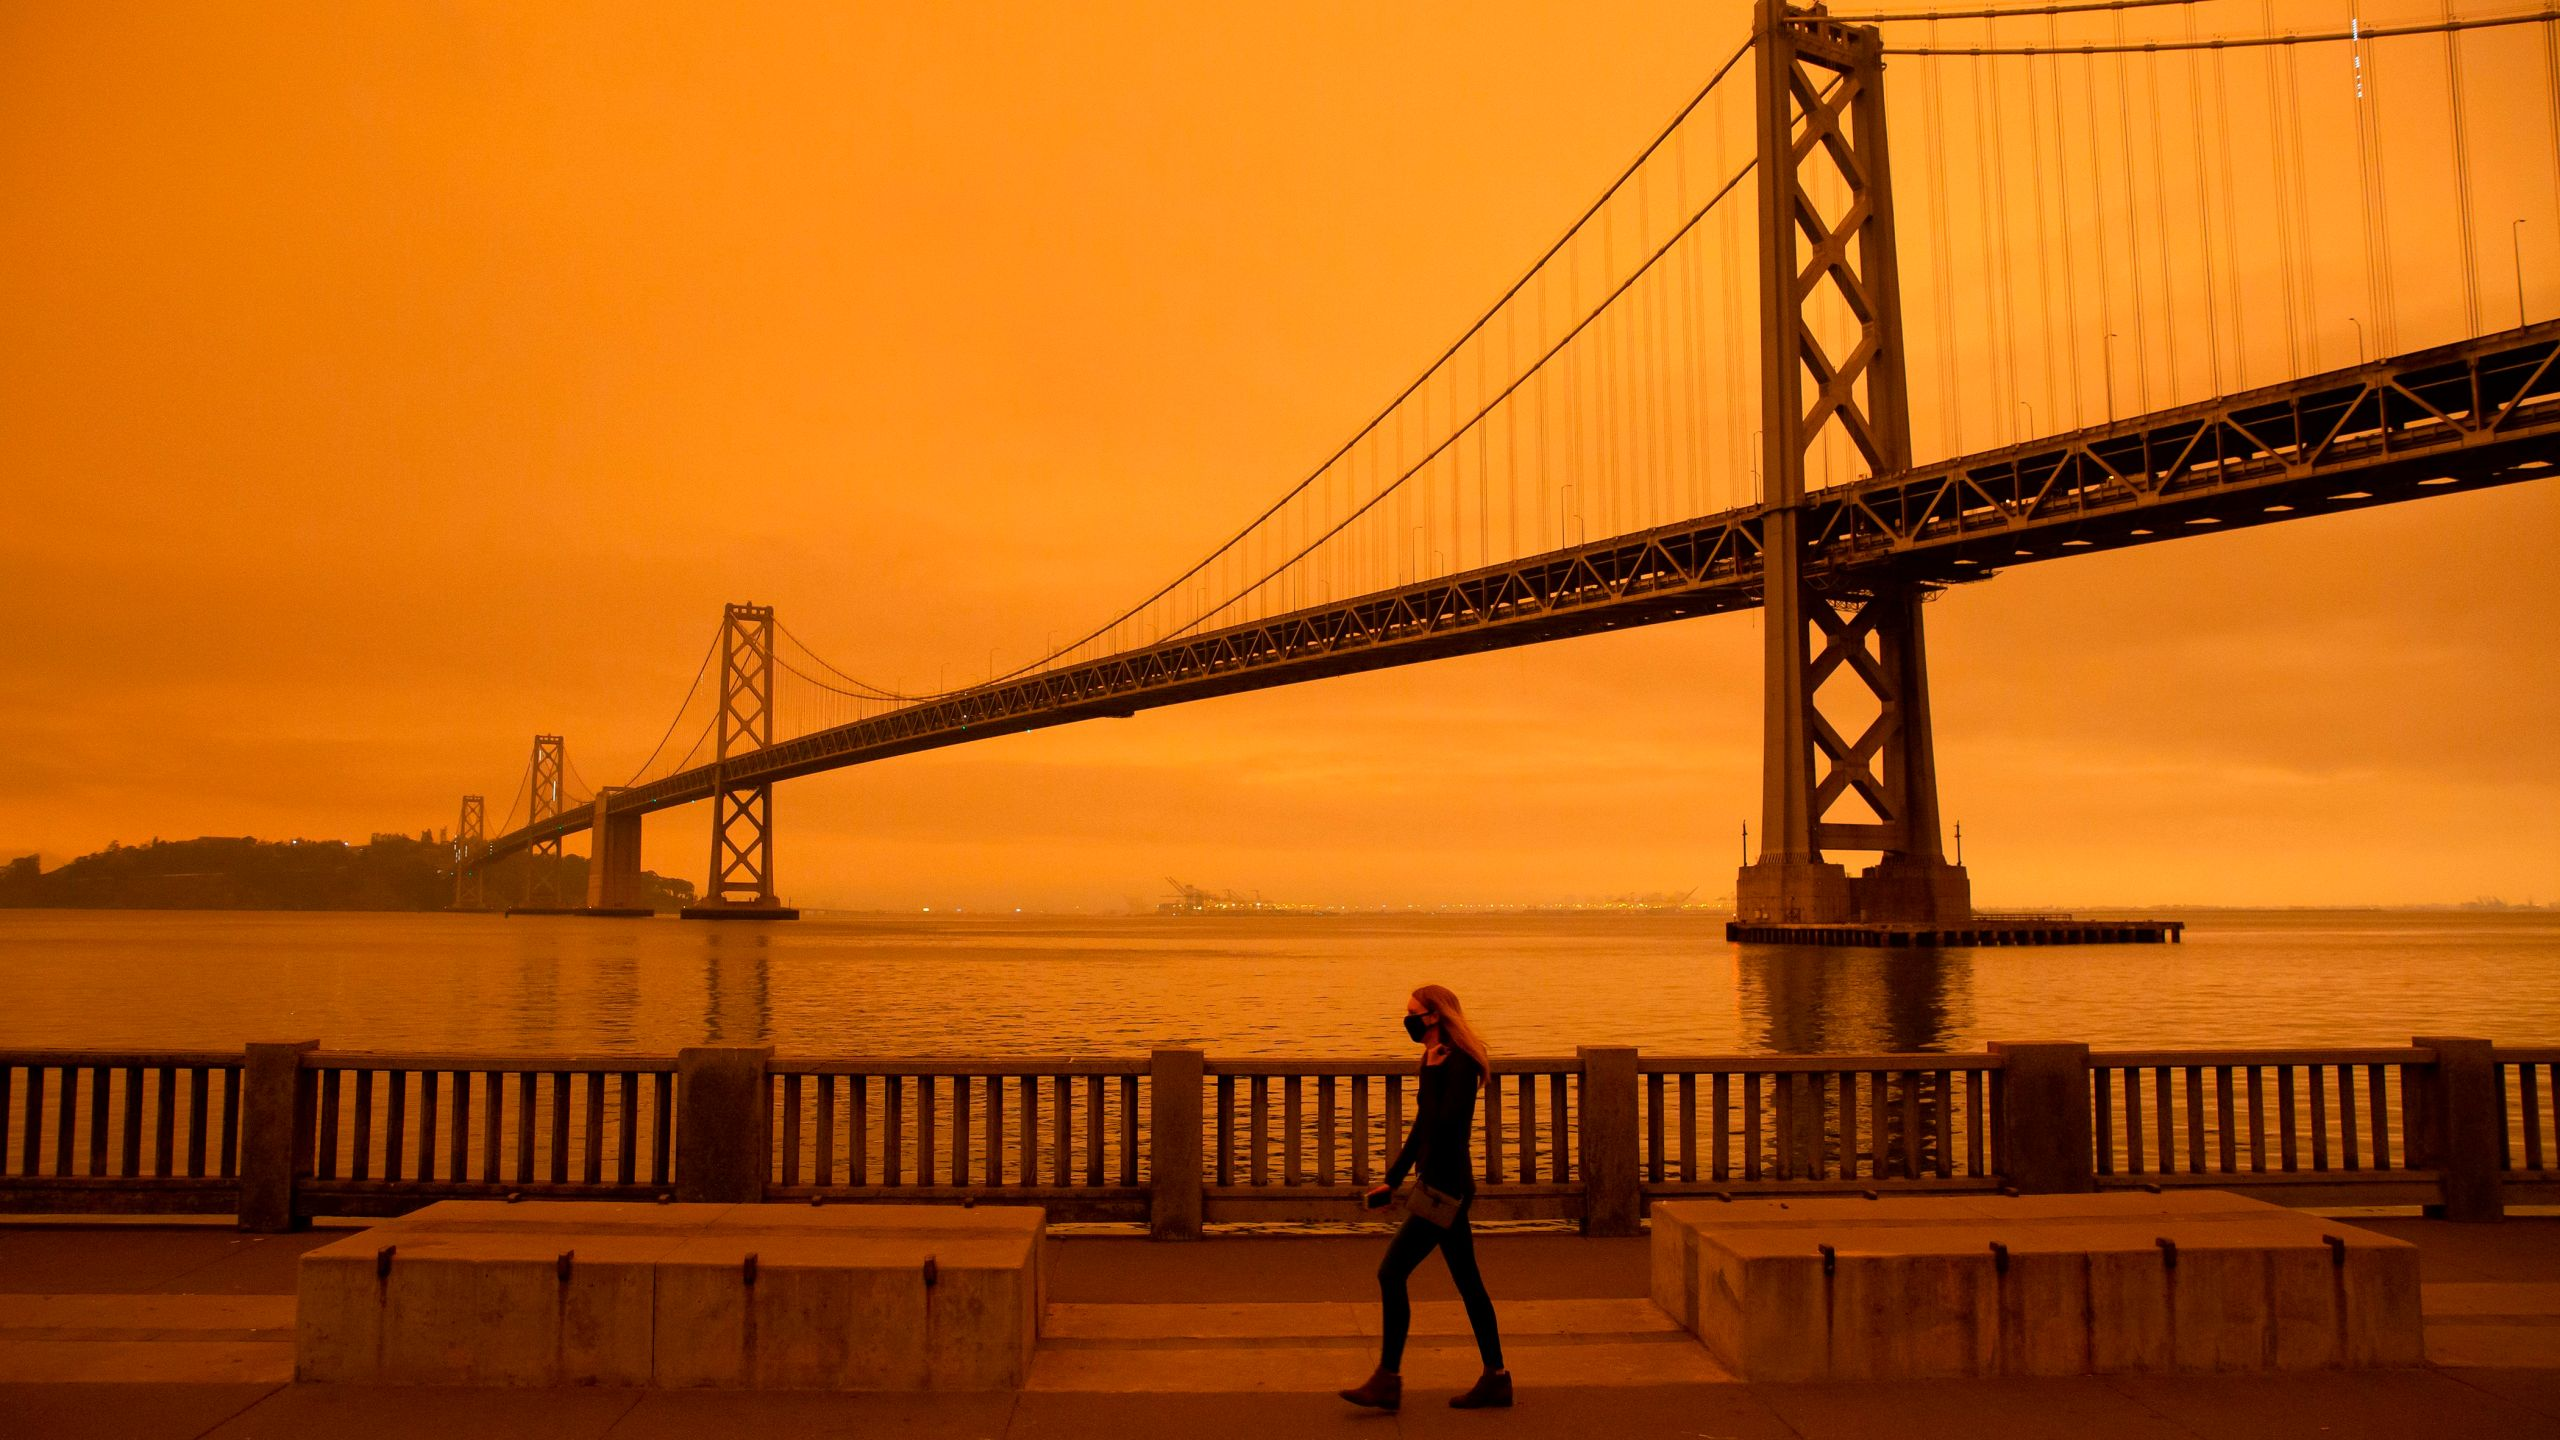 A woman walks along The Embarcadero under an orange smoke-filled sky in San Francisco on Sept. 9, 2020. (Brittany Hosea-Small / AFP / Getty Images)